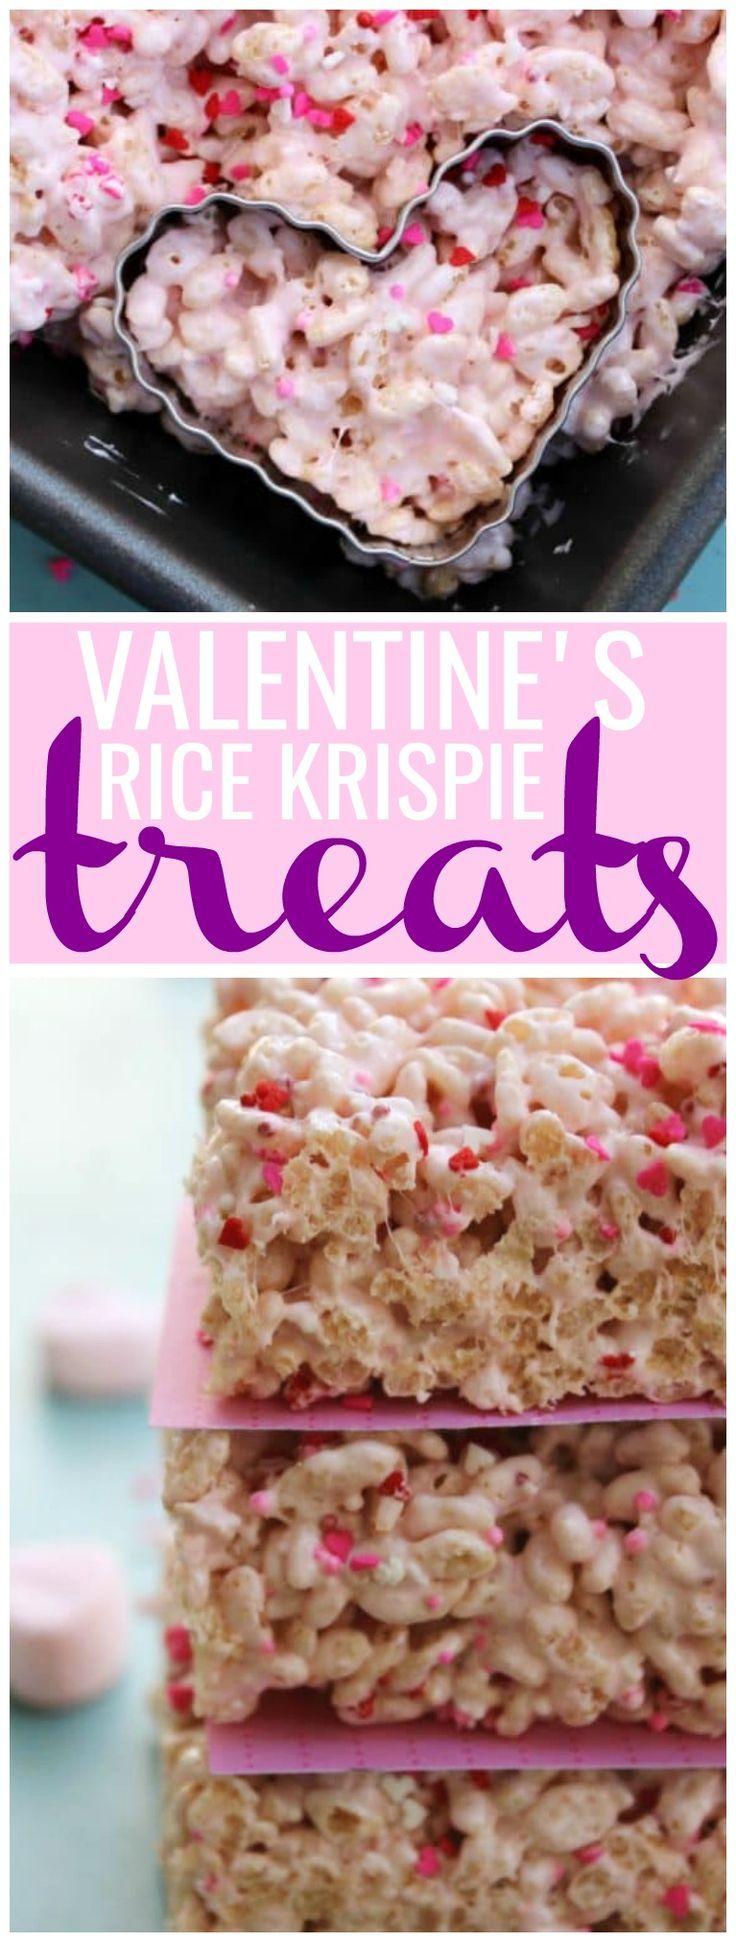 Show someone how much you love with these ooey, chewy & delicious VALENTINE'S RICE KRISPIE TREATS. Easy, delicious and irresistible. #valentinesday #treat #ricekrispies